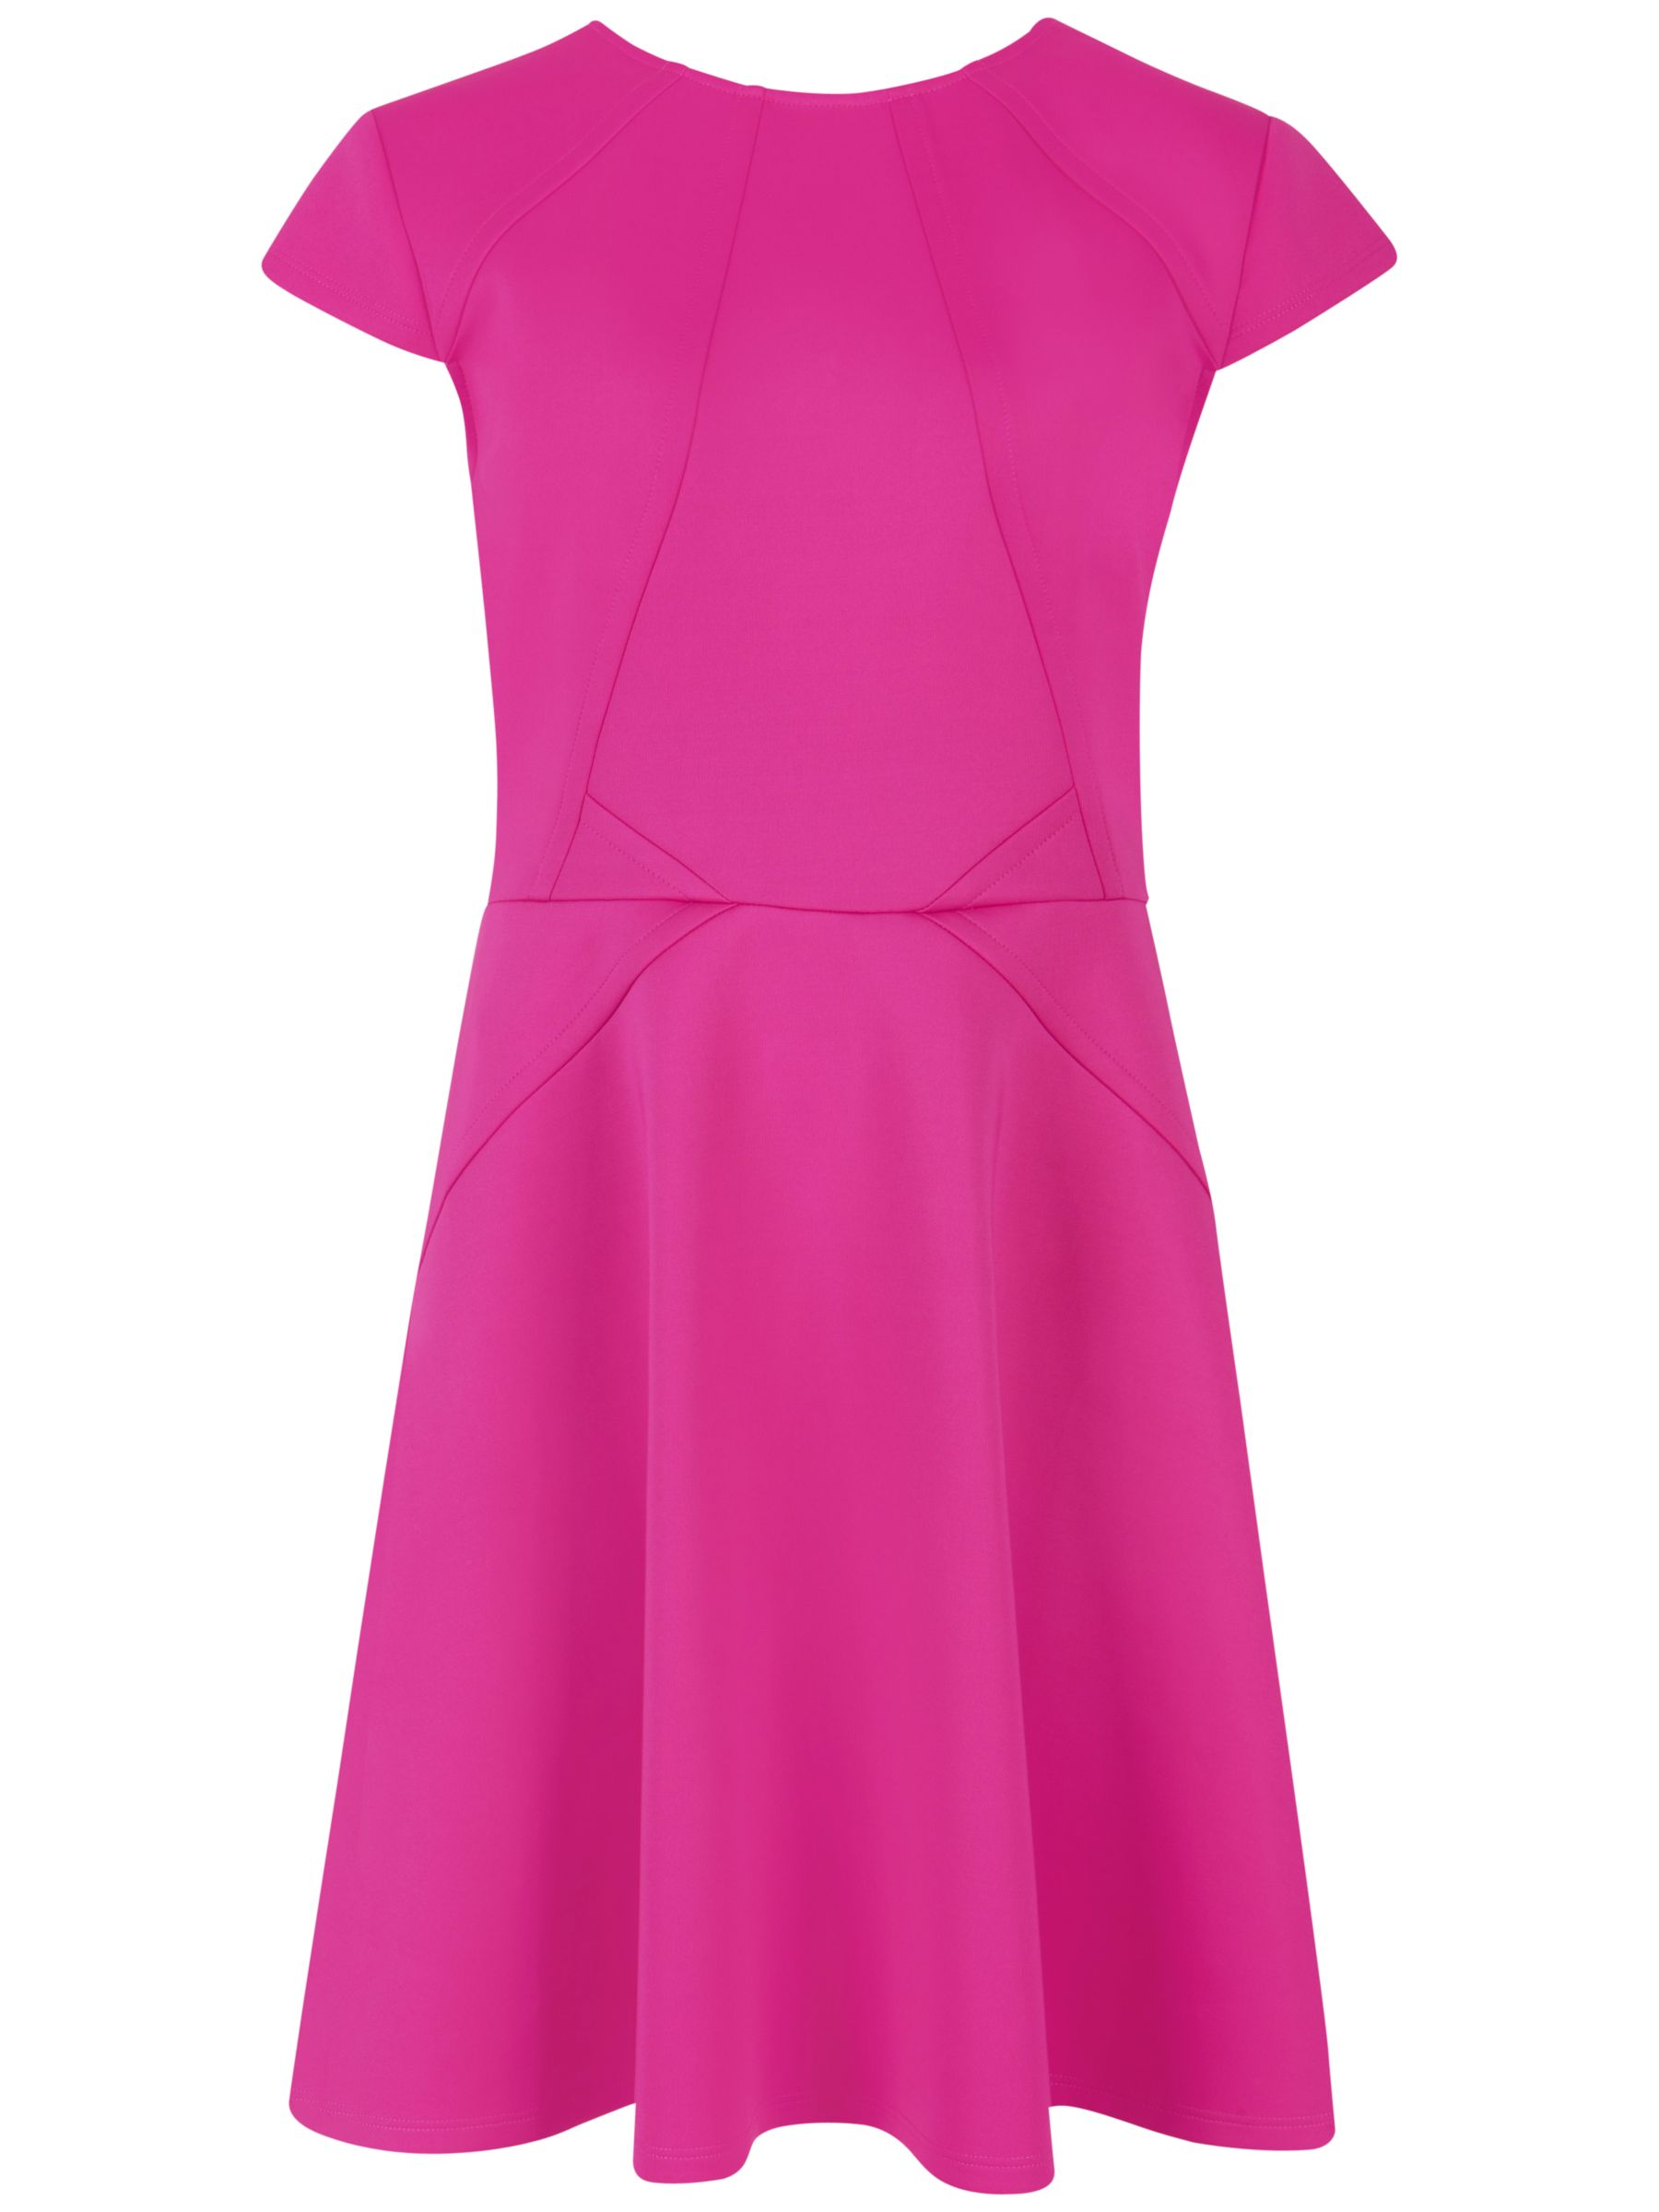 ted baker cap sleeve skater dress pink, ted, baker, cap, sleeve, skater, dress, pink, ted baker, 5|4|2|0|1|3, women, womens dresses, special offers, womenswear offers, 30% off selected ted baker, gifts, wedding, wedding clothing, female guests, fashion magazine, womenswear, men, brands l-z, 1797240